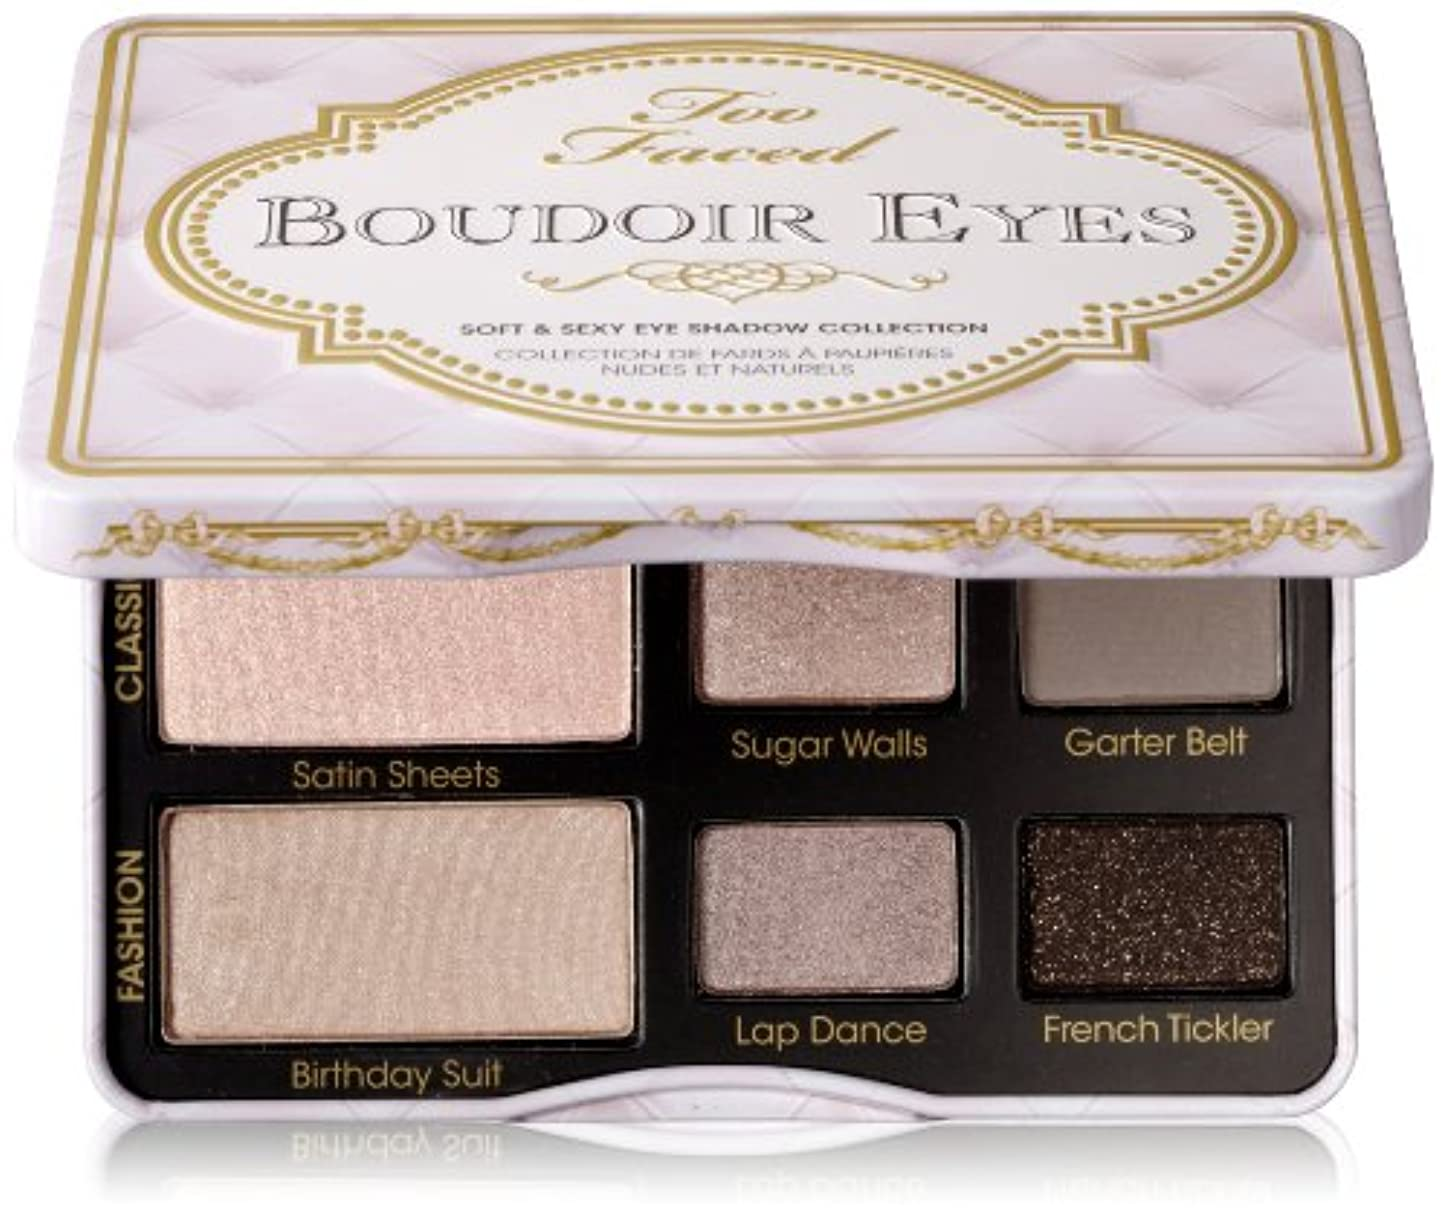 モスクサイトライン平等Too Faced Boudoir Eyes Soft & Sexy Eye Shadow Collection (並行輸入品)